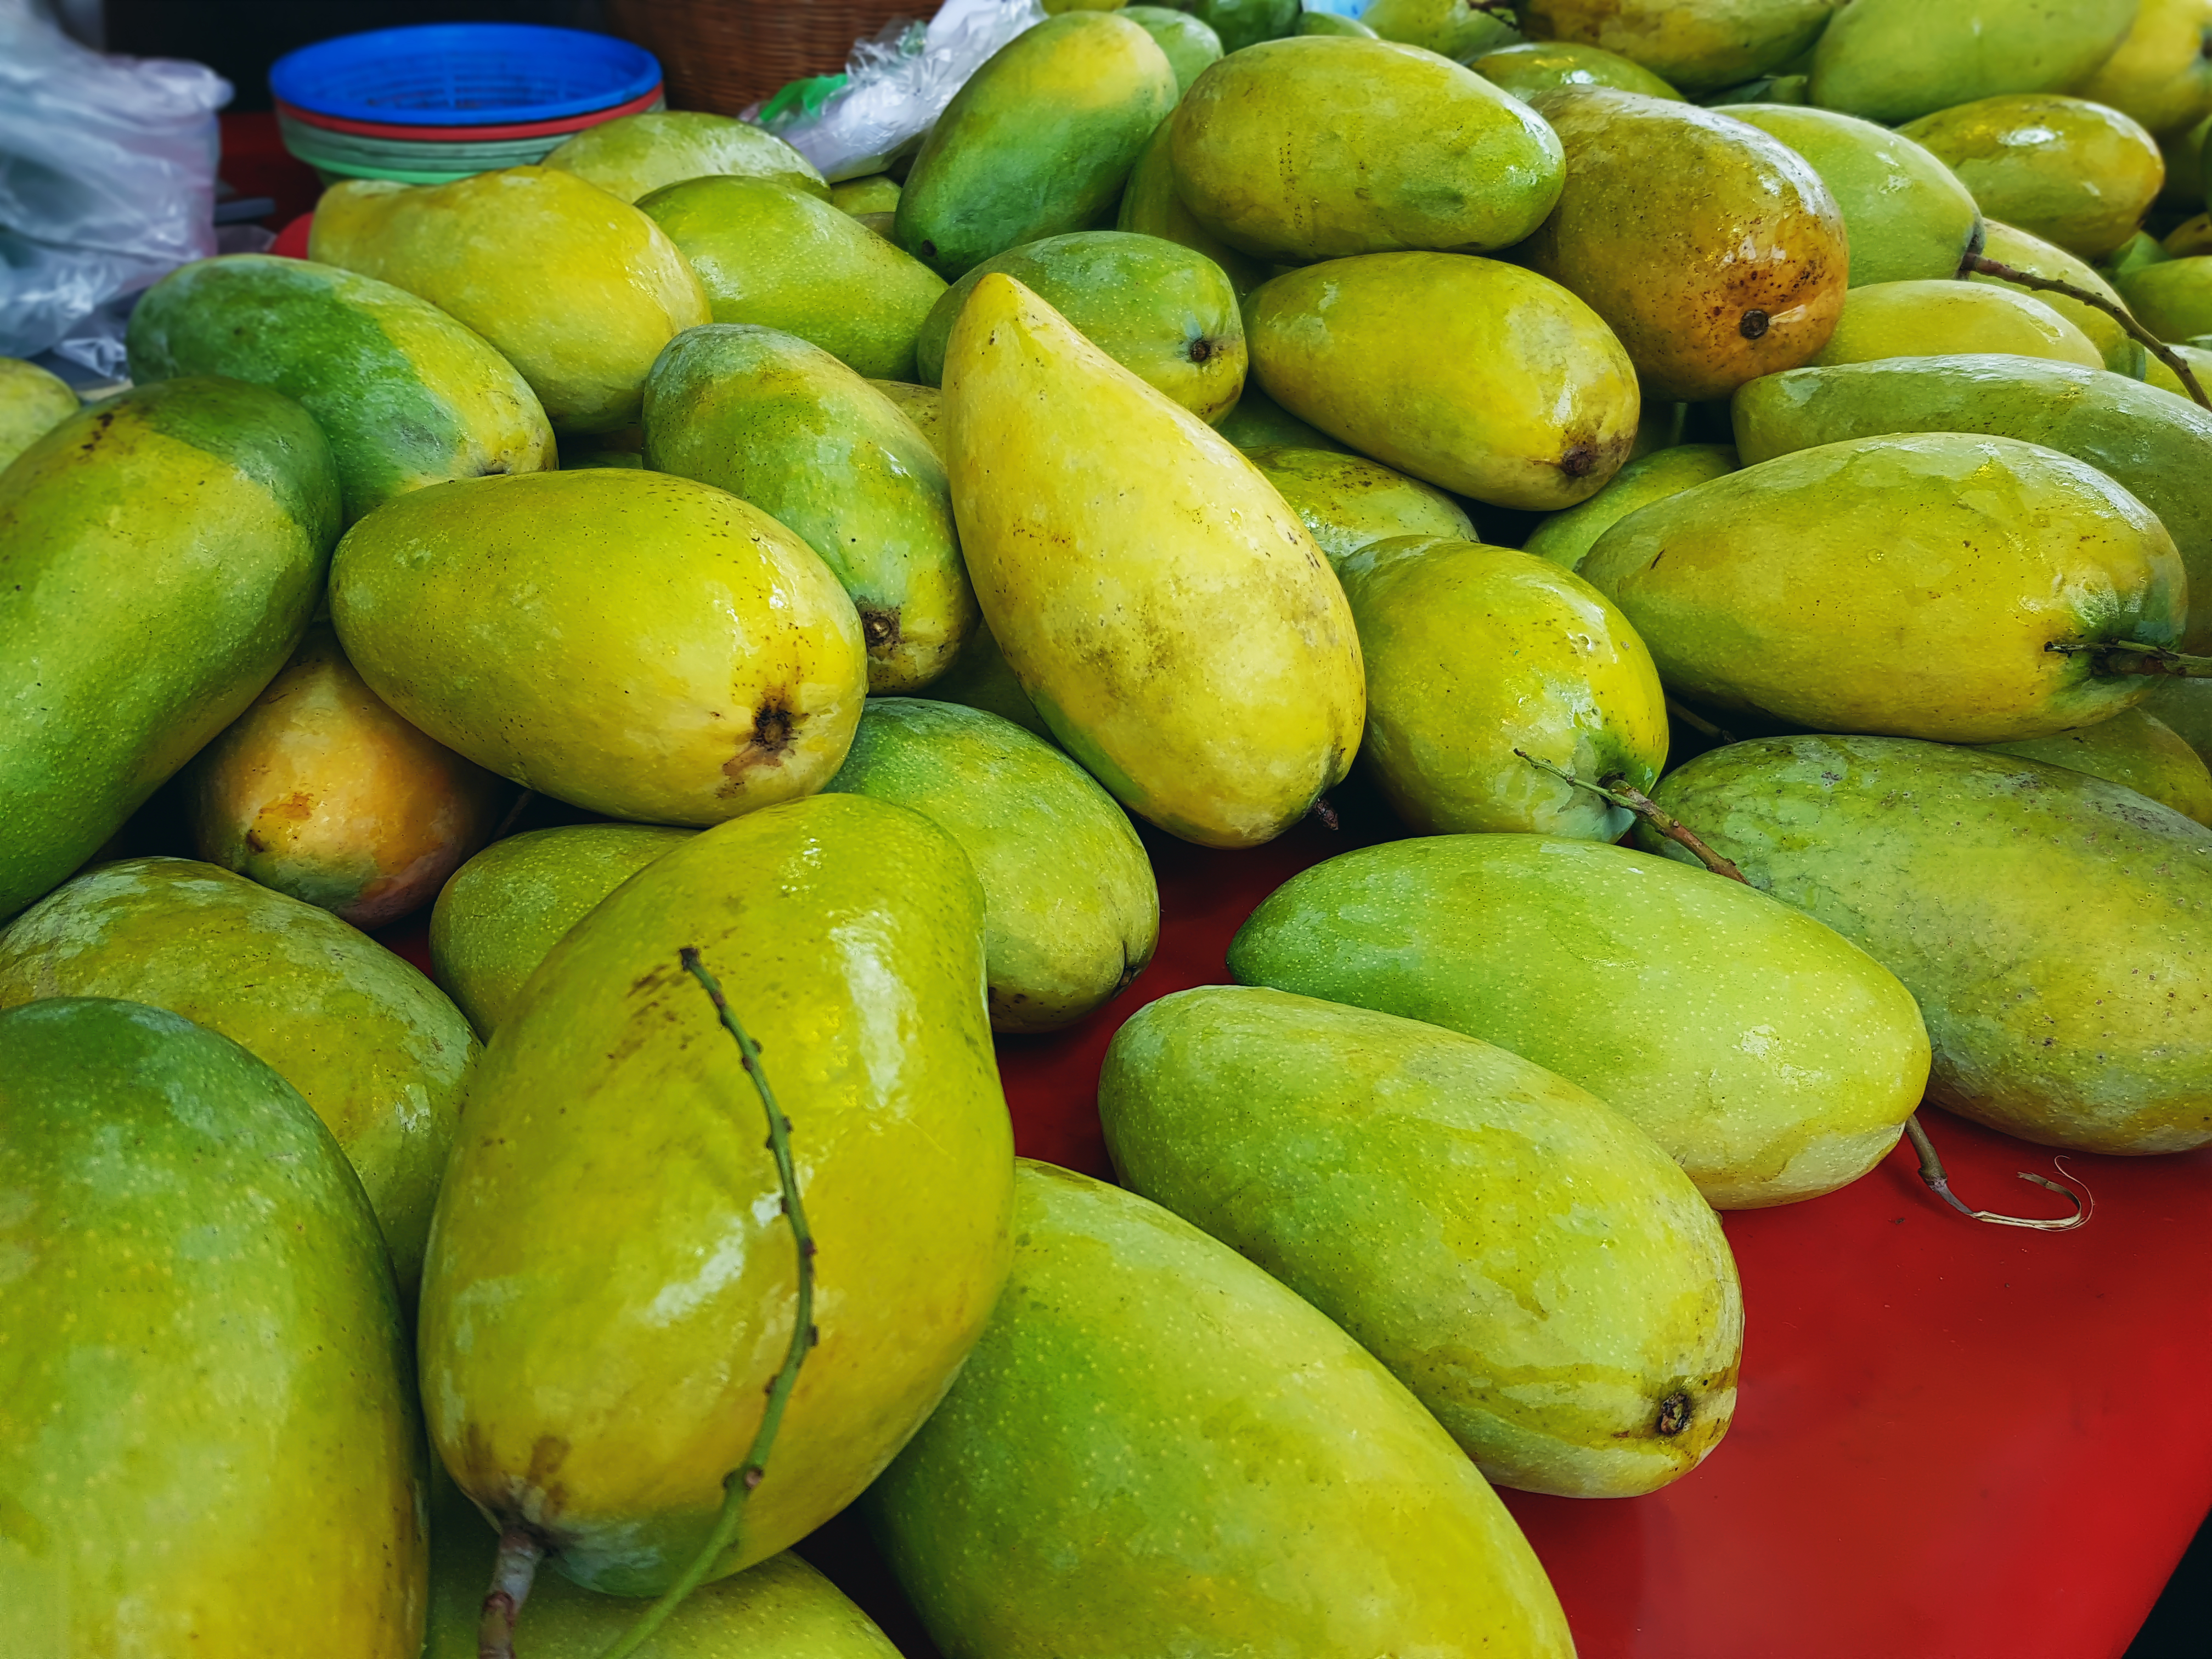 green_and_yellow_fruits_lot-scopio-27f98